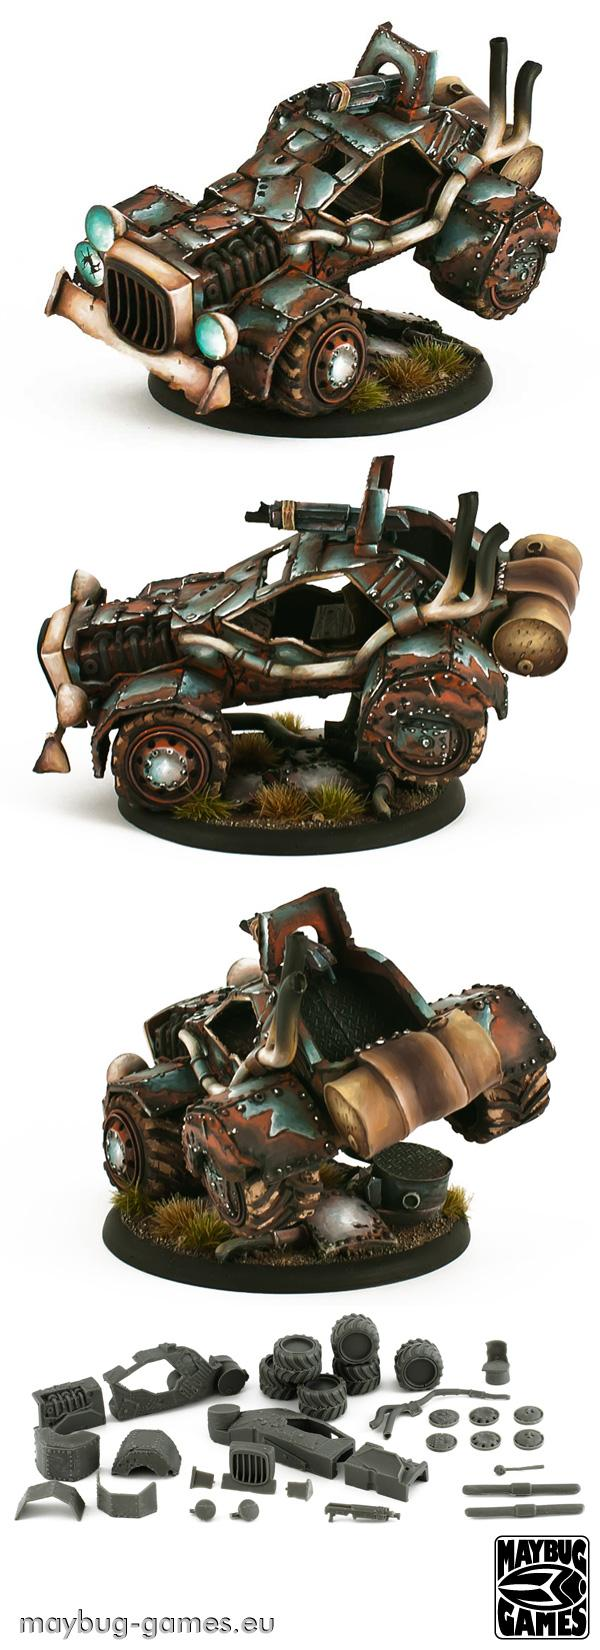 Buggy, Civilian, Jeep, Land Runner, Post Apocalyptic, Vehicle, Warhammer 40,000